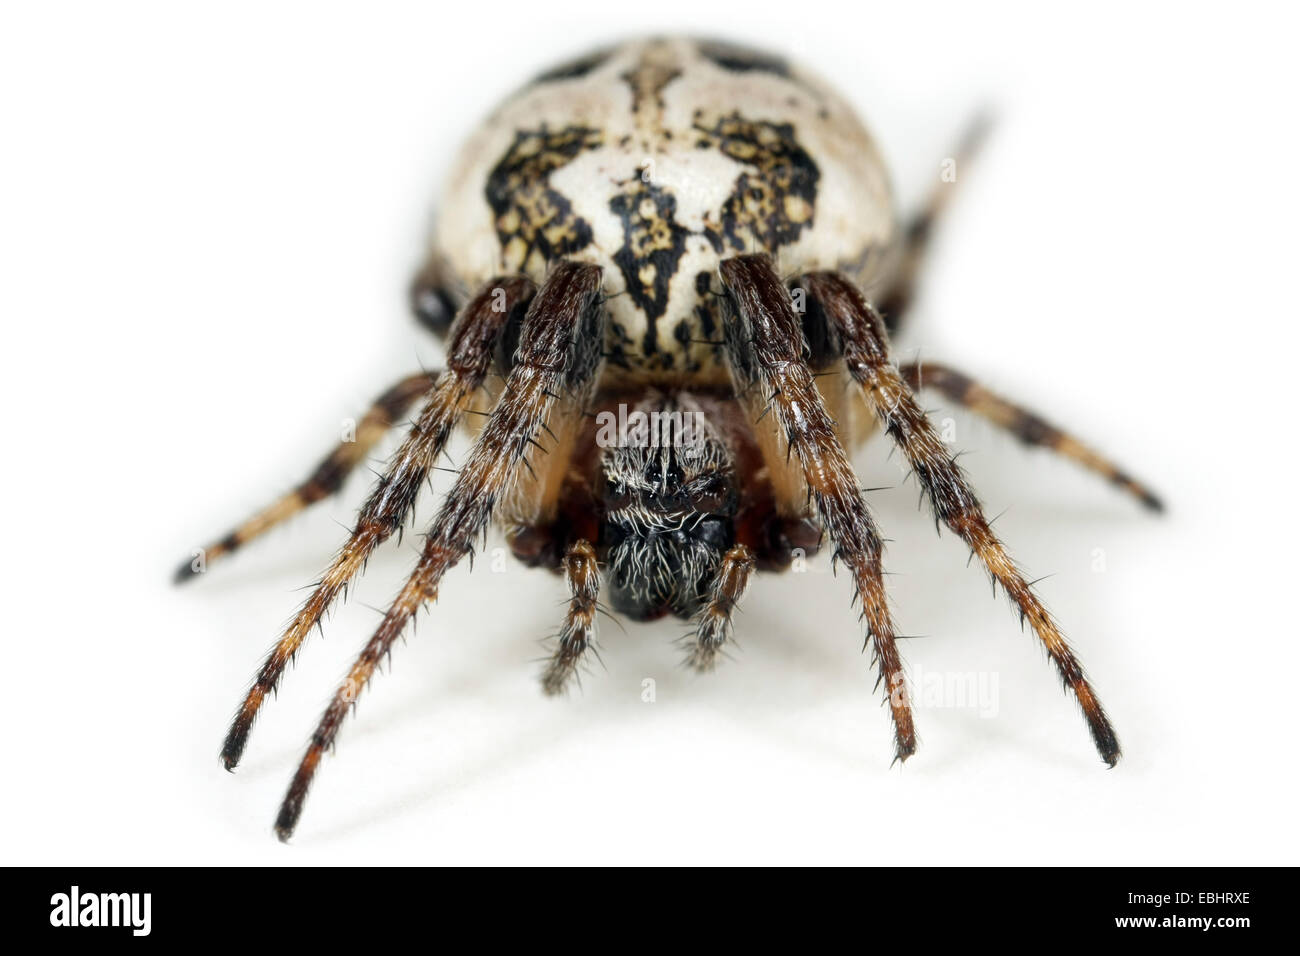 A female Furrow Orbweaver (Larinioides cornutus) on white background. Family Araneidae, Orbweaving spiders. Stock Photo